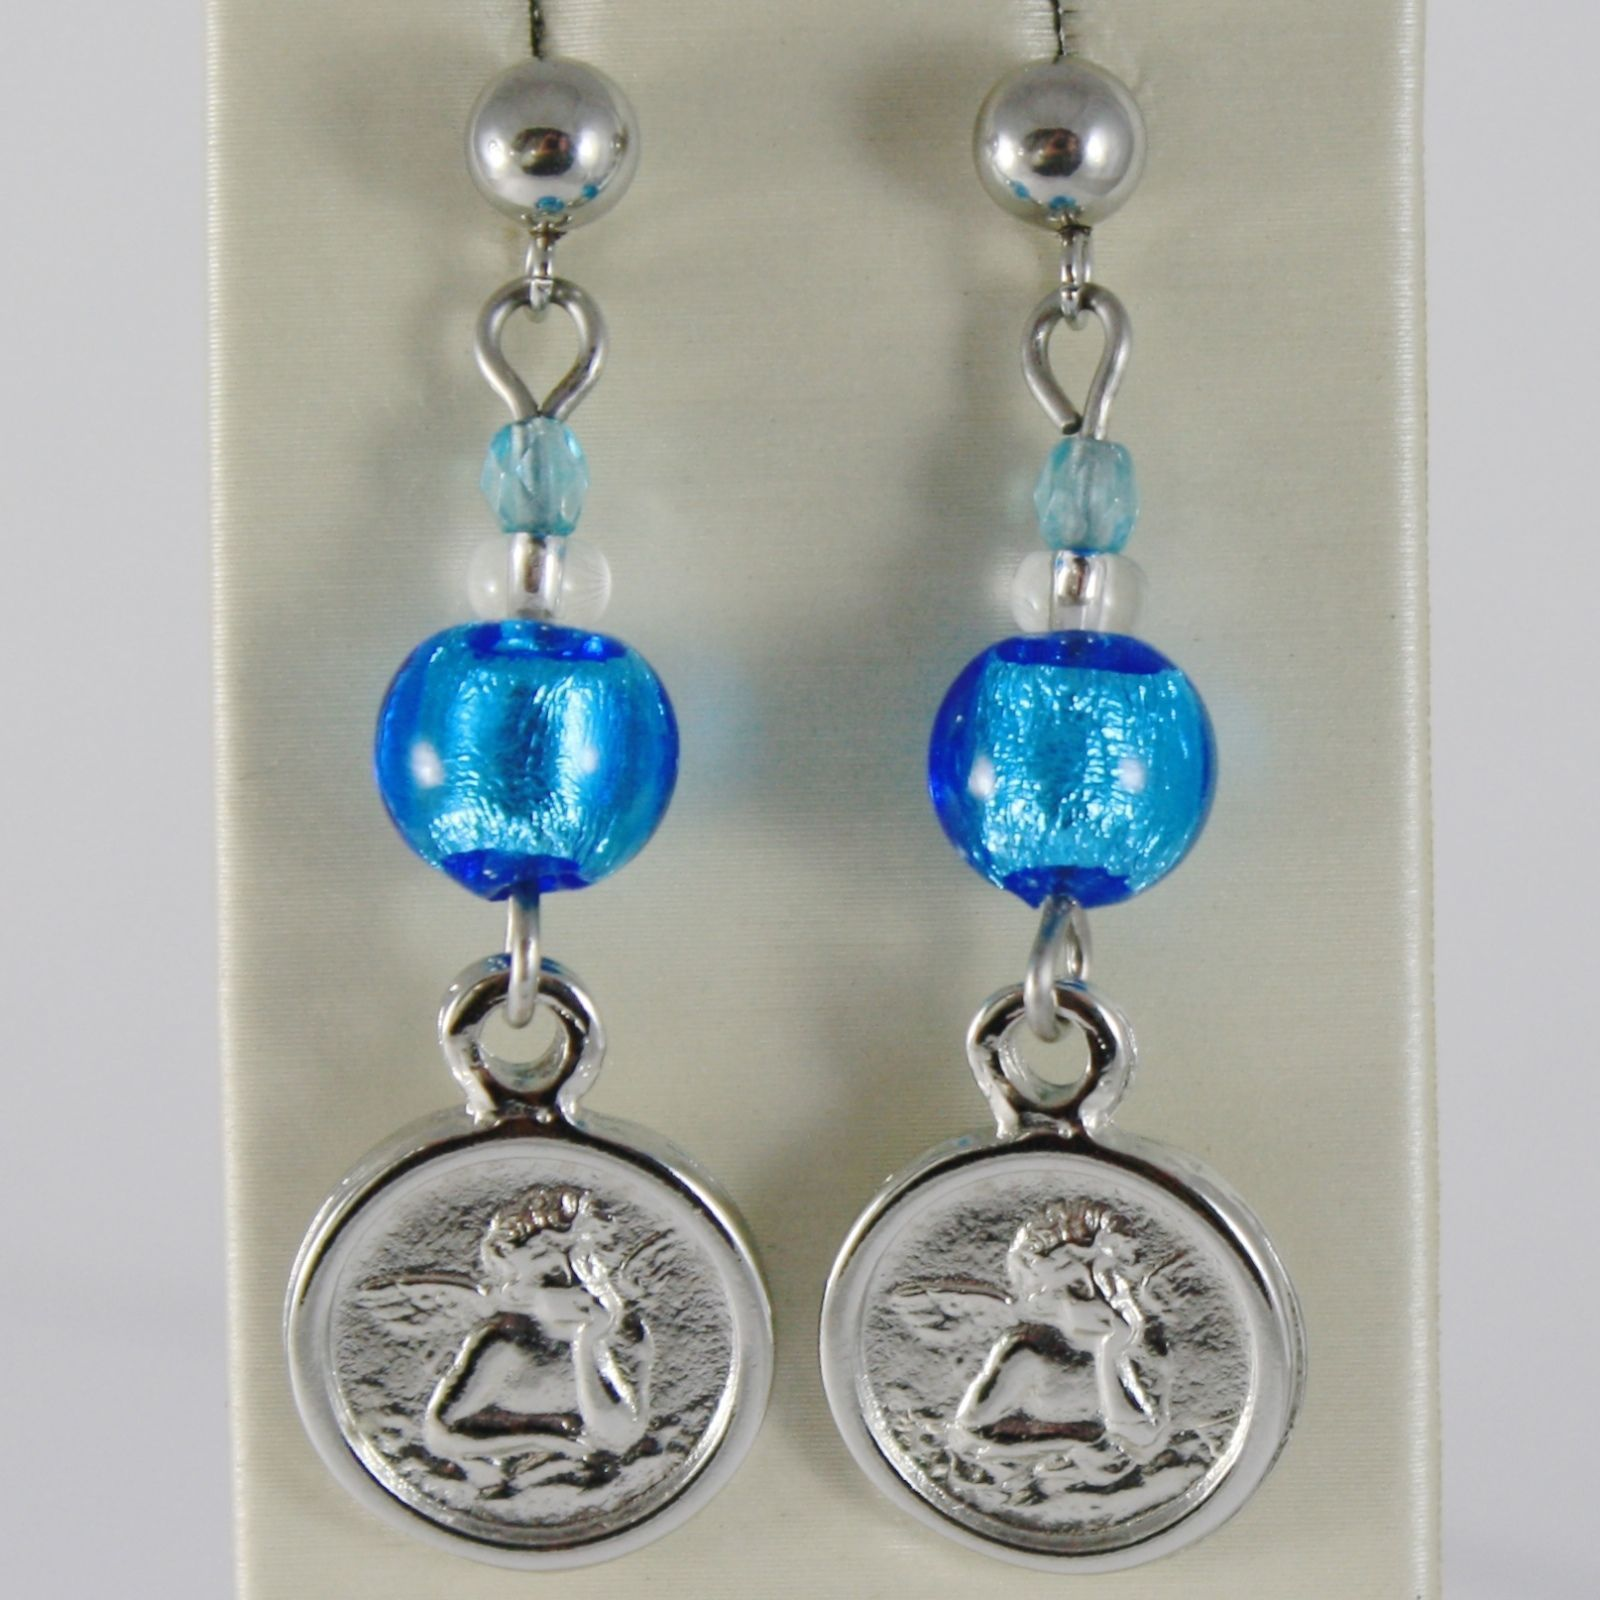 EARRINGS ANTICA MURRINA VENEZIA WITH MURANO GLASS BLUE AND ANGEL GUARDIAN